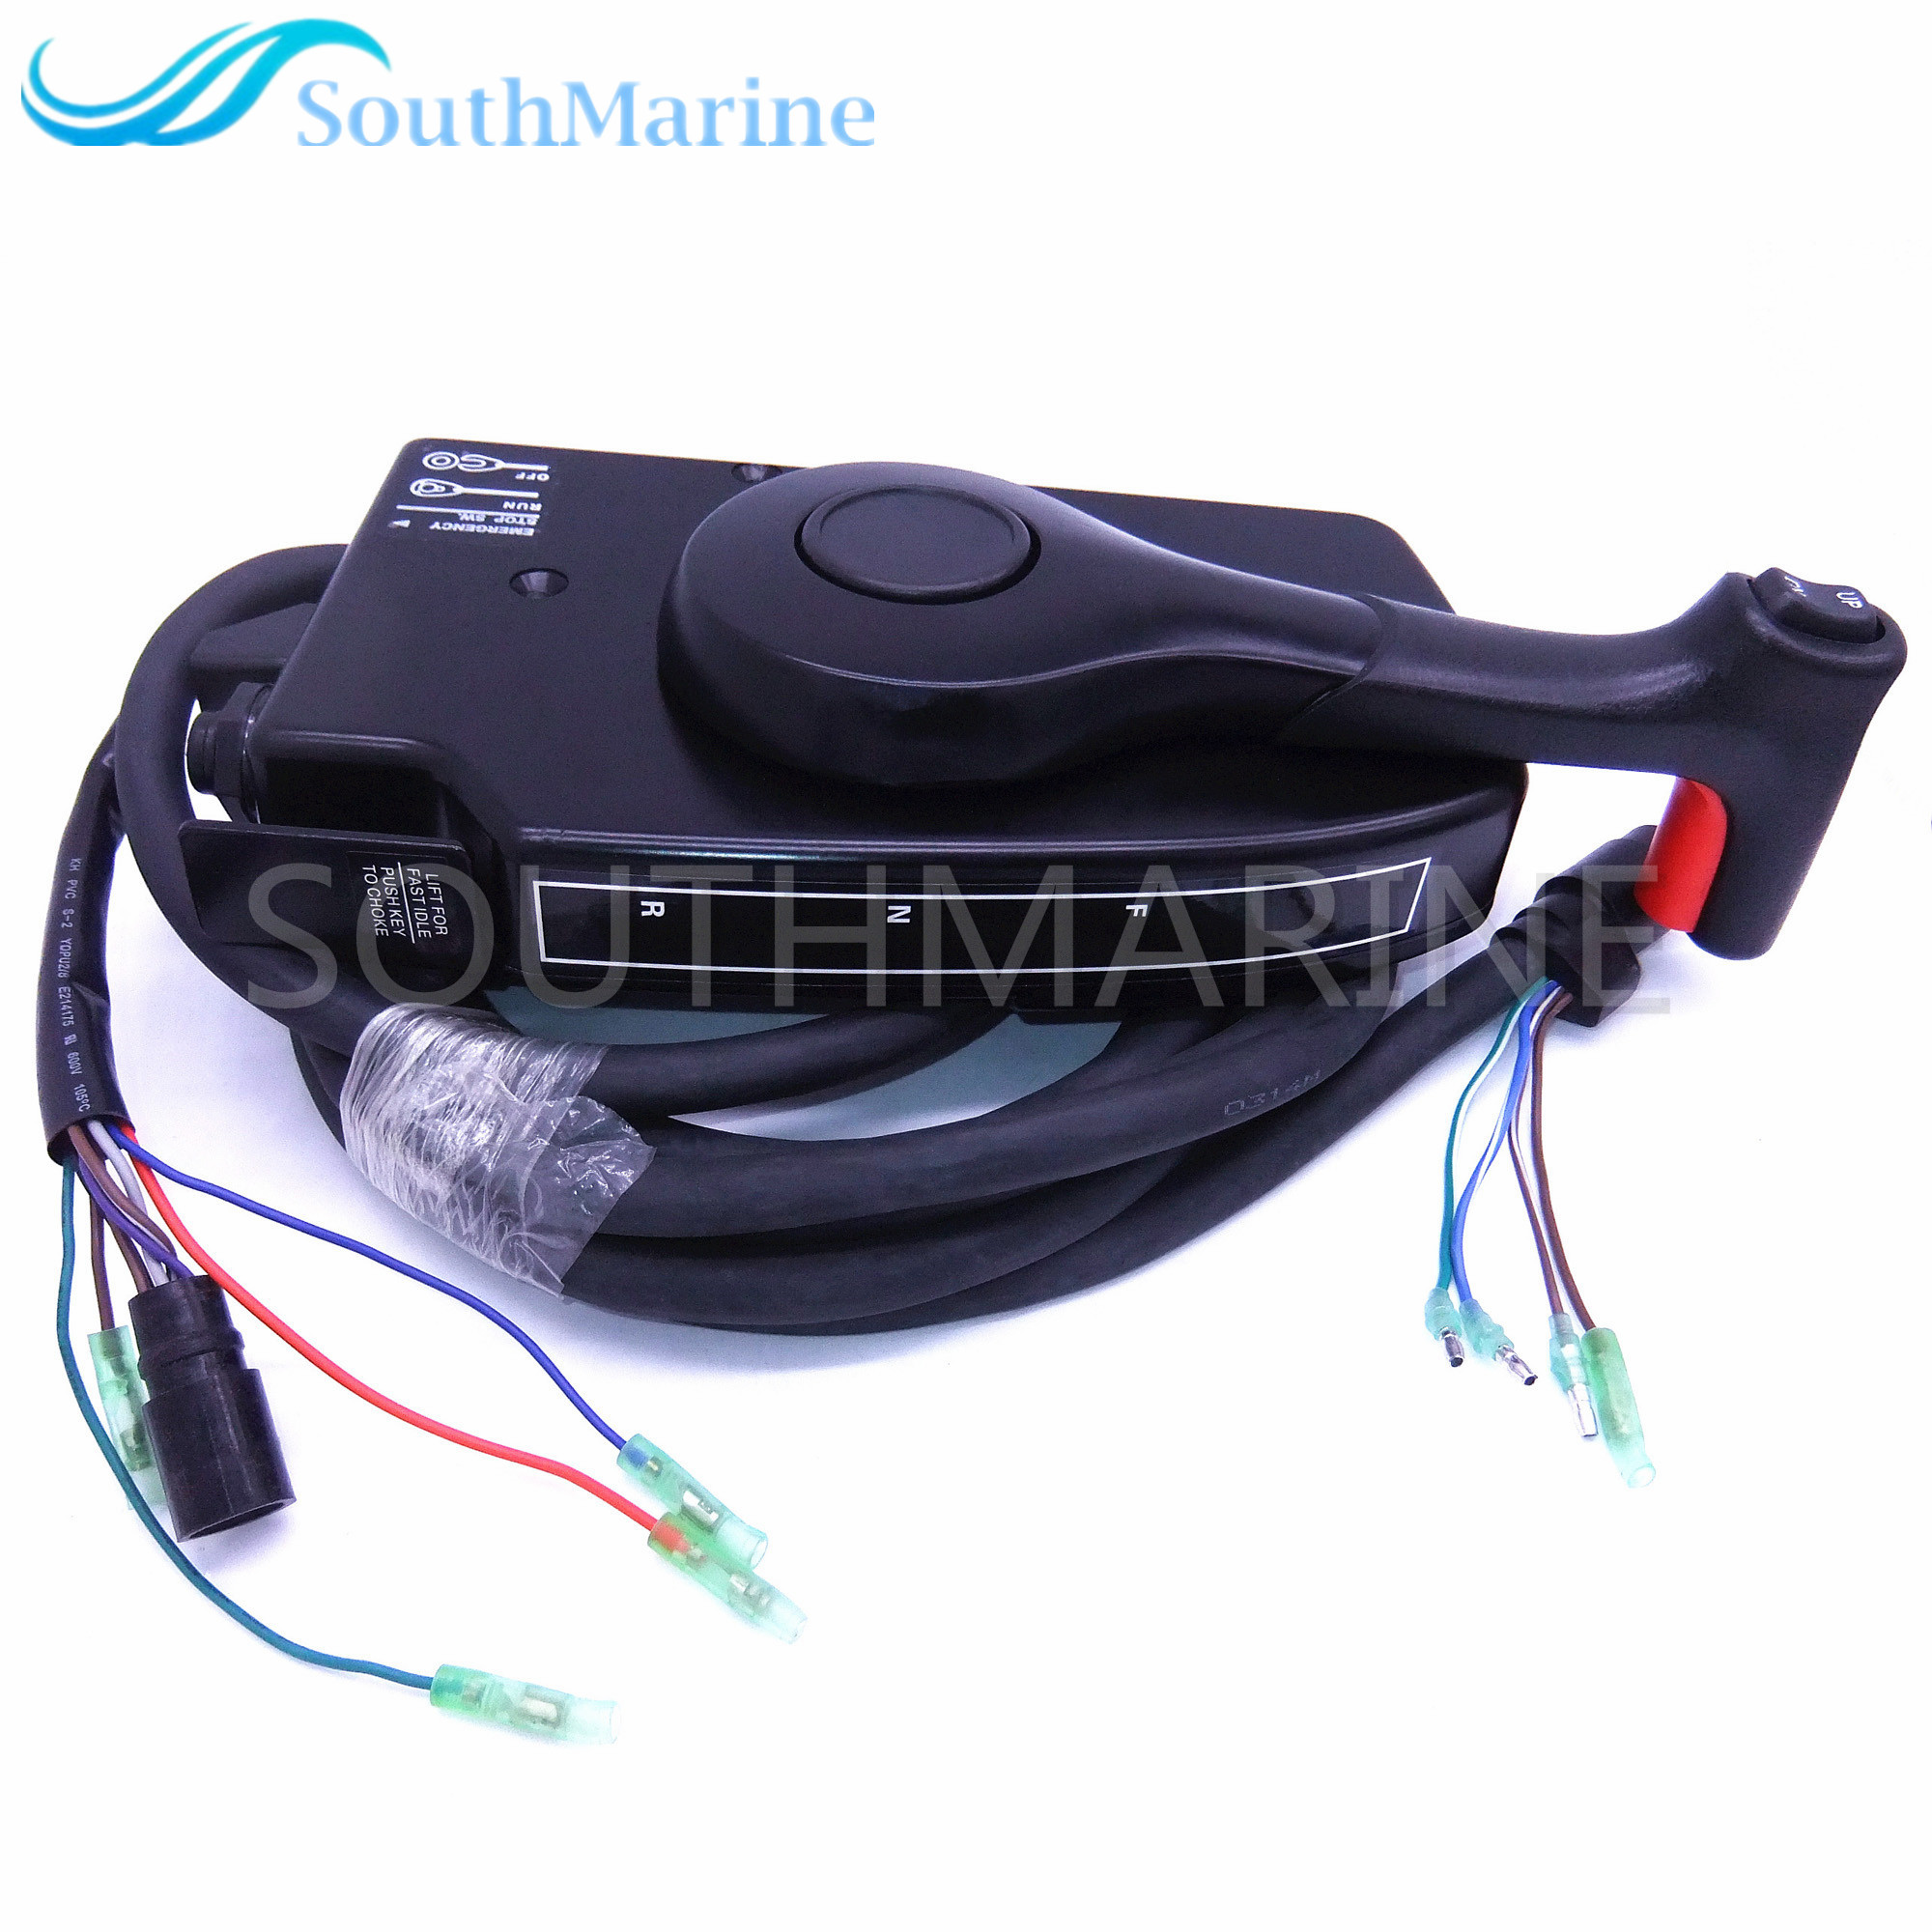 us $221 38 10% off boat motor side mount remote control box 881170a15 with 8 pin for mercury outboard engine pt ,free shipping in boat engine from